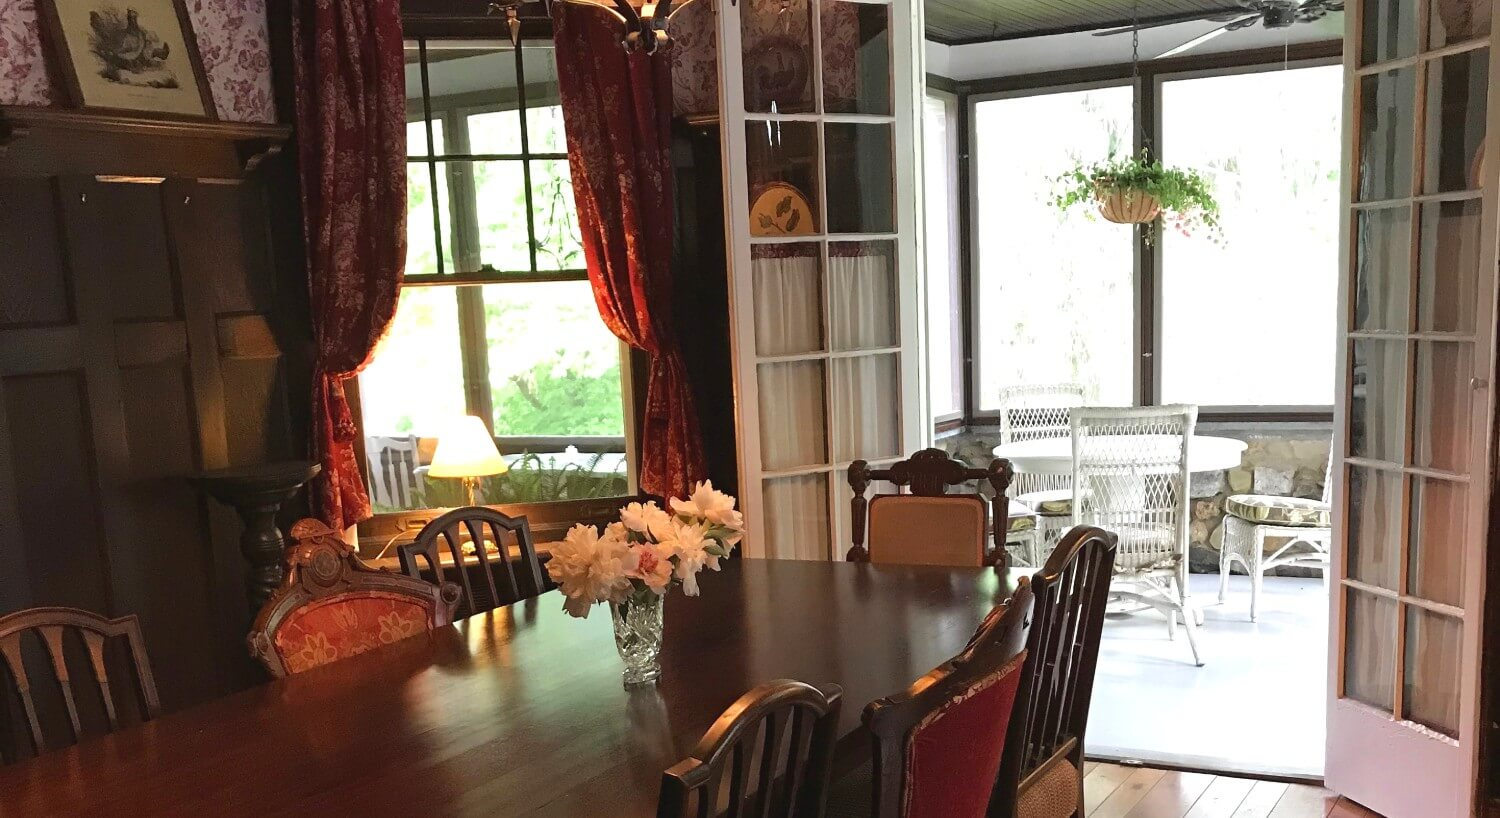 Dining room with dark brown table and hutch near window with red curtains and French doors opening to a bright patio